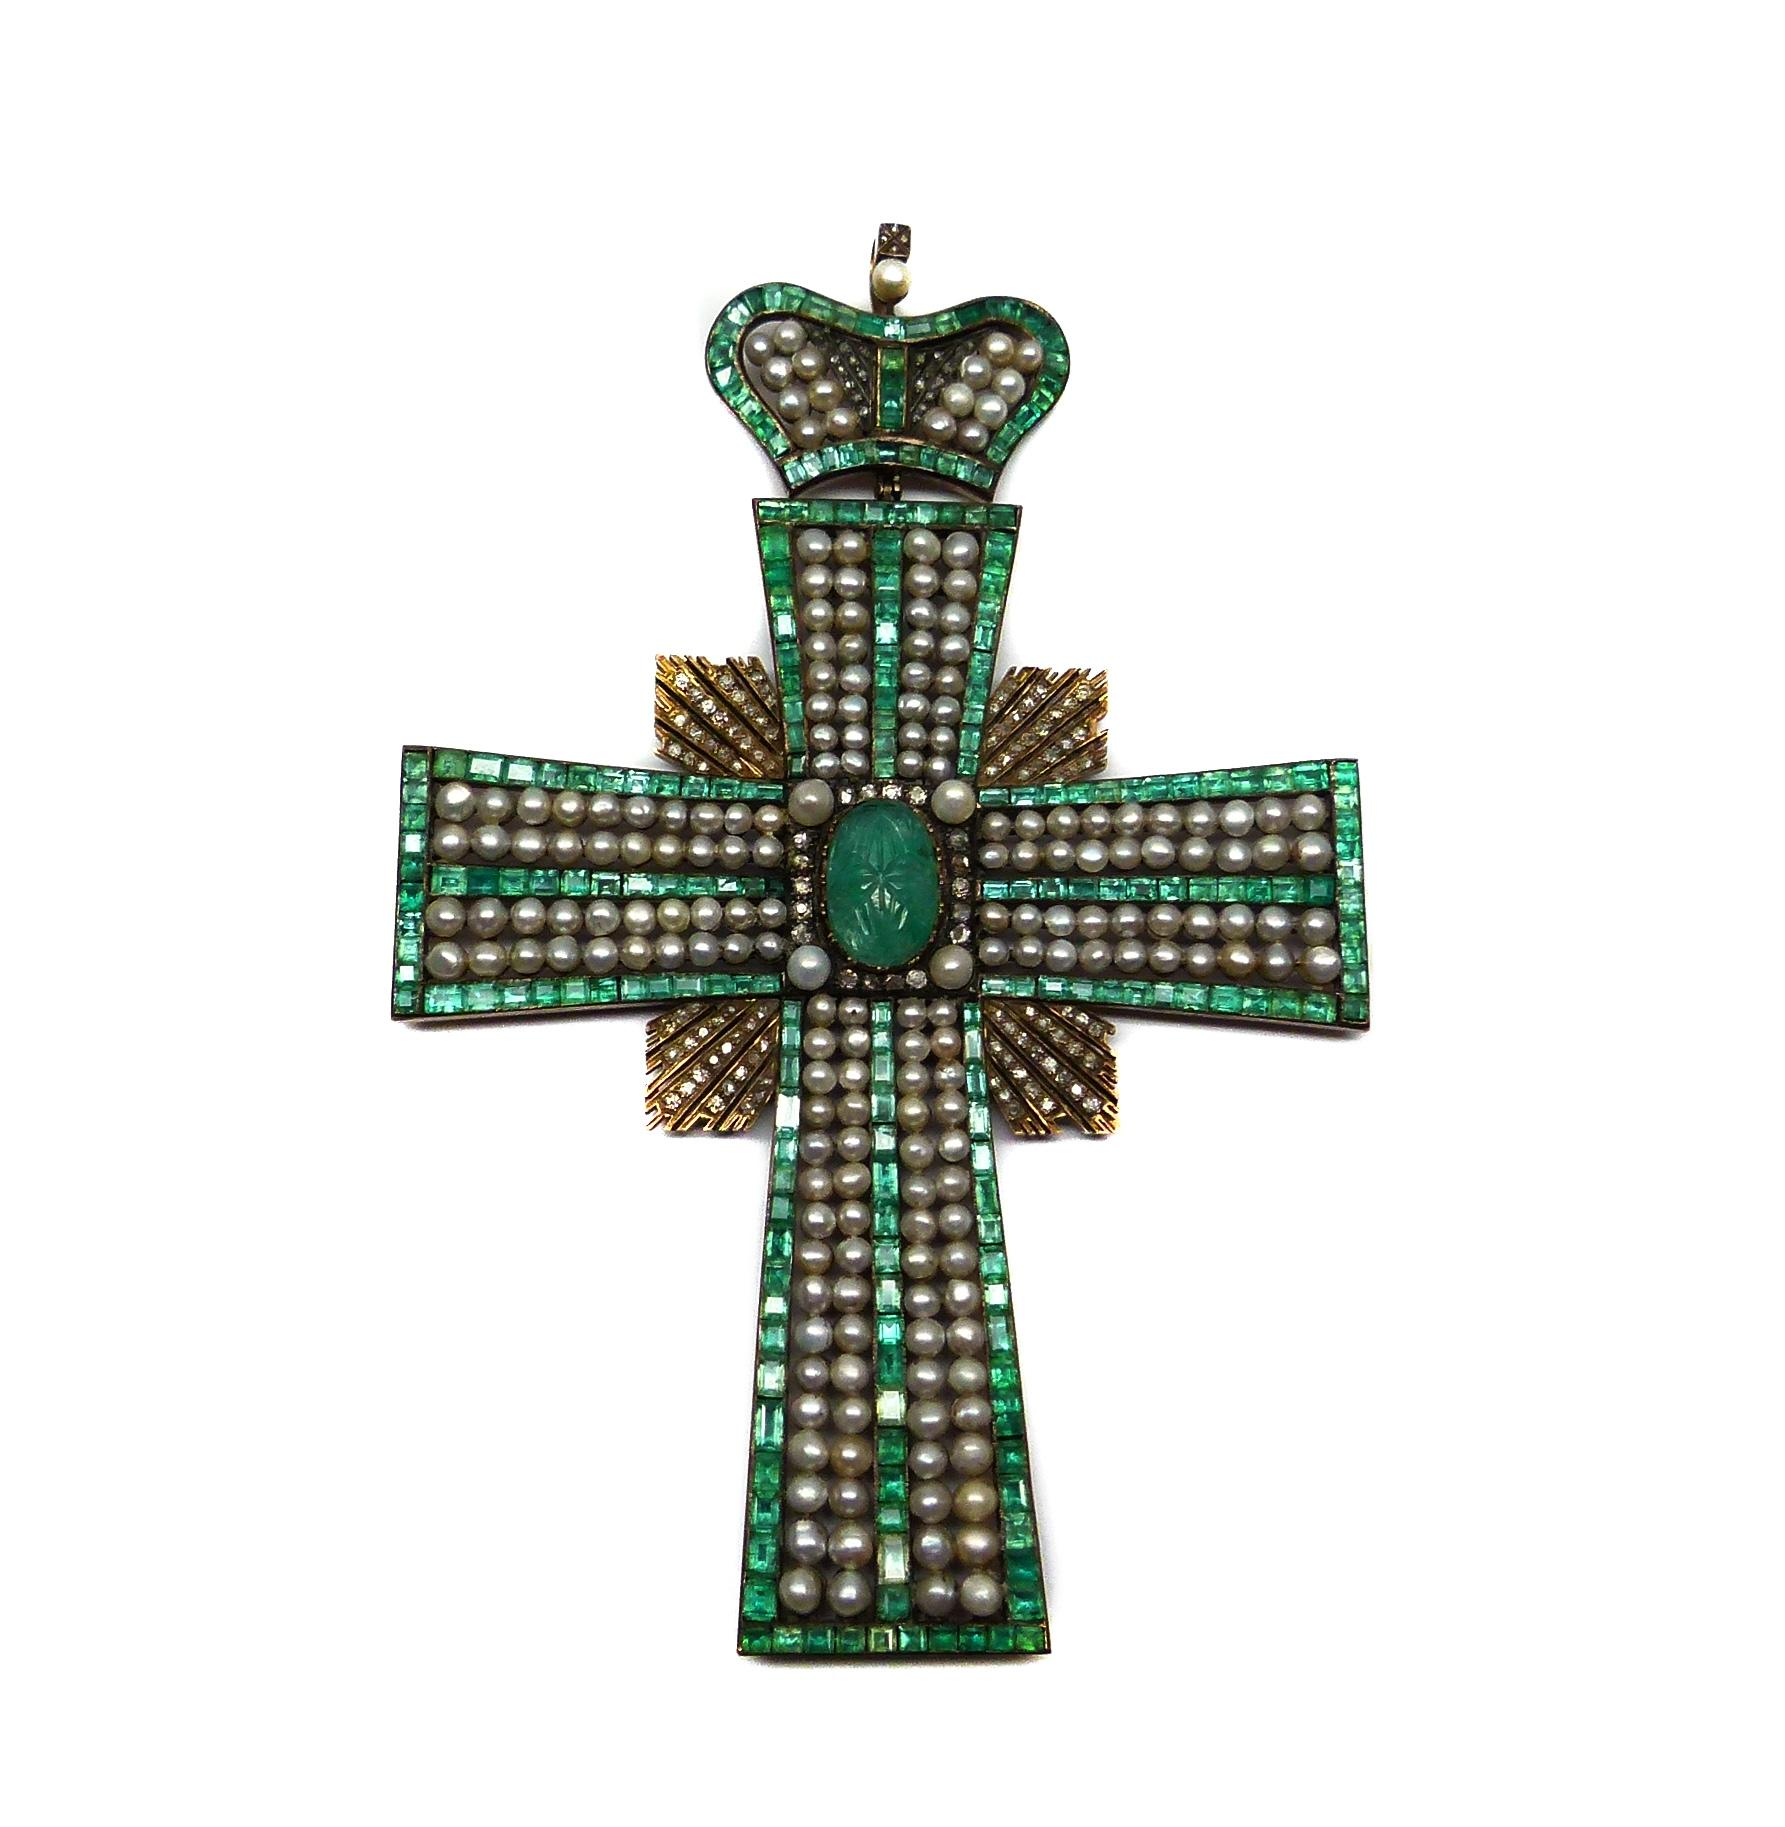 Large 19th century emerald, pearl and diamond cross pendant with coronet surmount, Russian c.1850 - See more at: http://www.masterart.com/Large-19th-century-emerald-pearl-and-diamond-cross-pendant-with-coronet-surmount